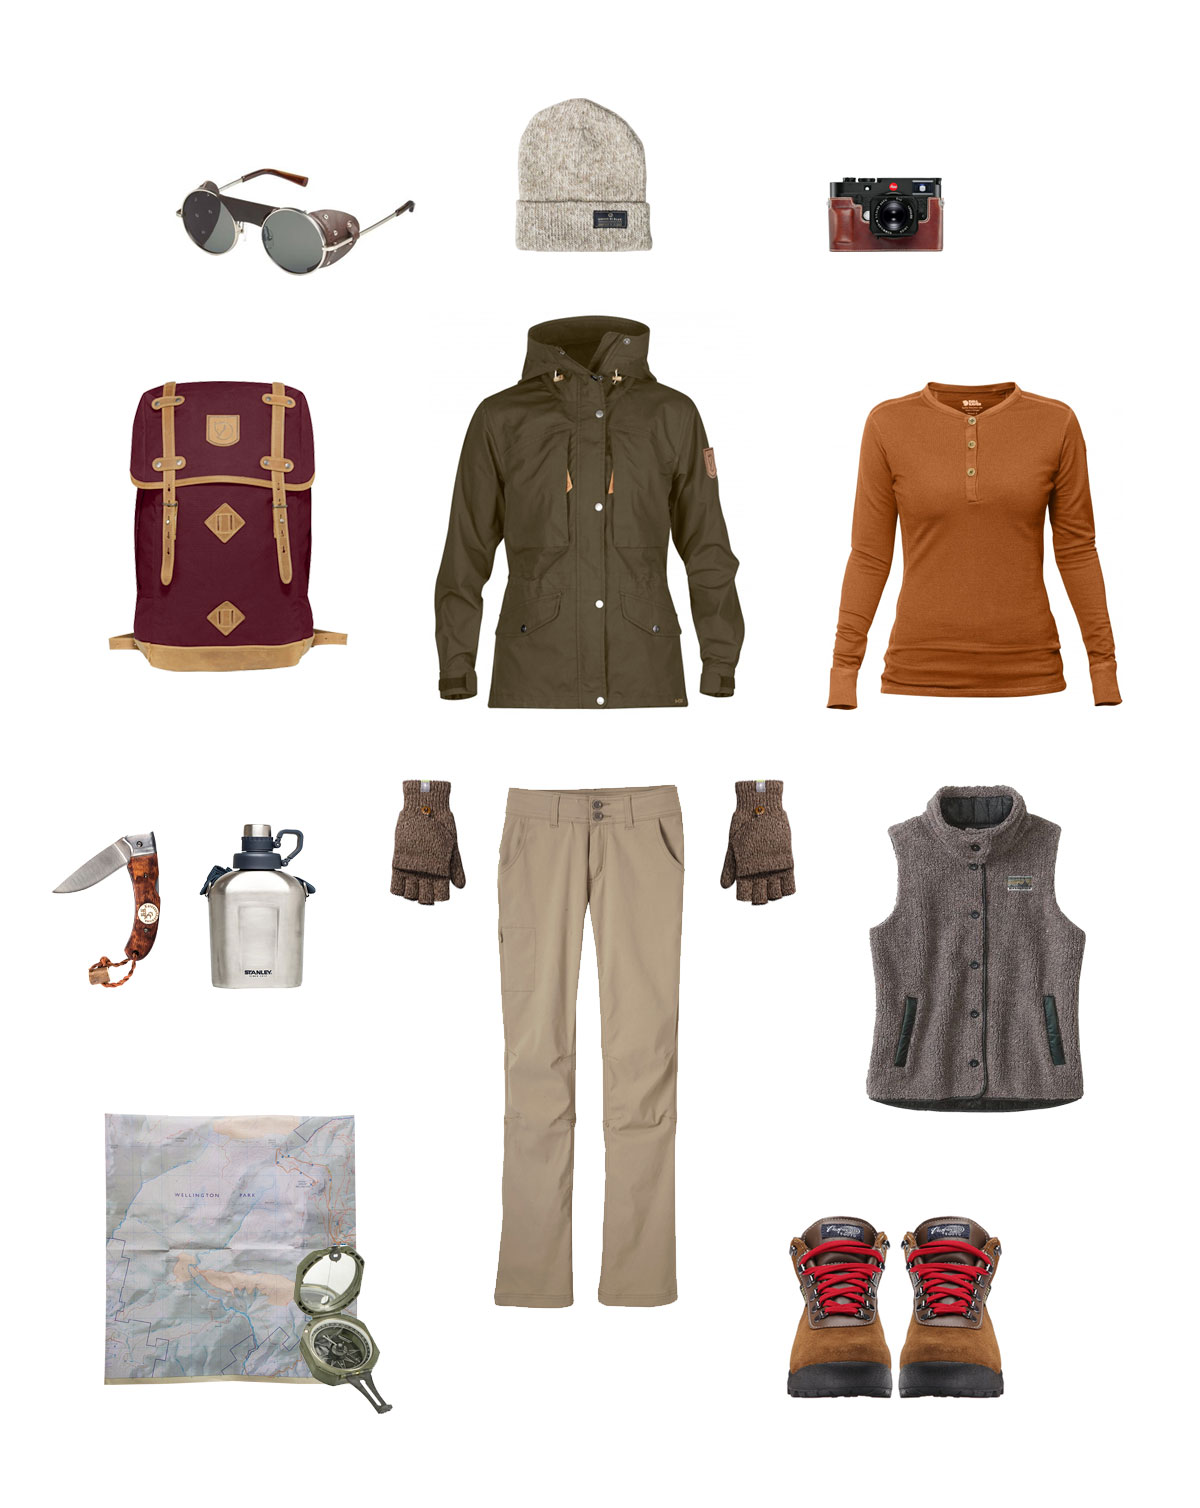 vintage inspired hiking gear - For the Love of Outdoors